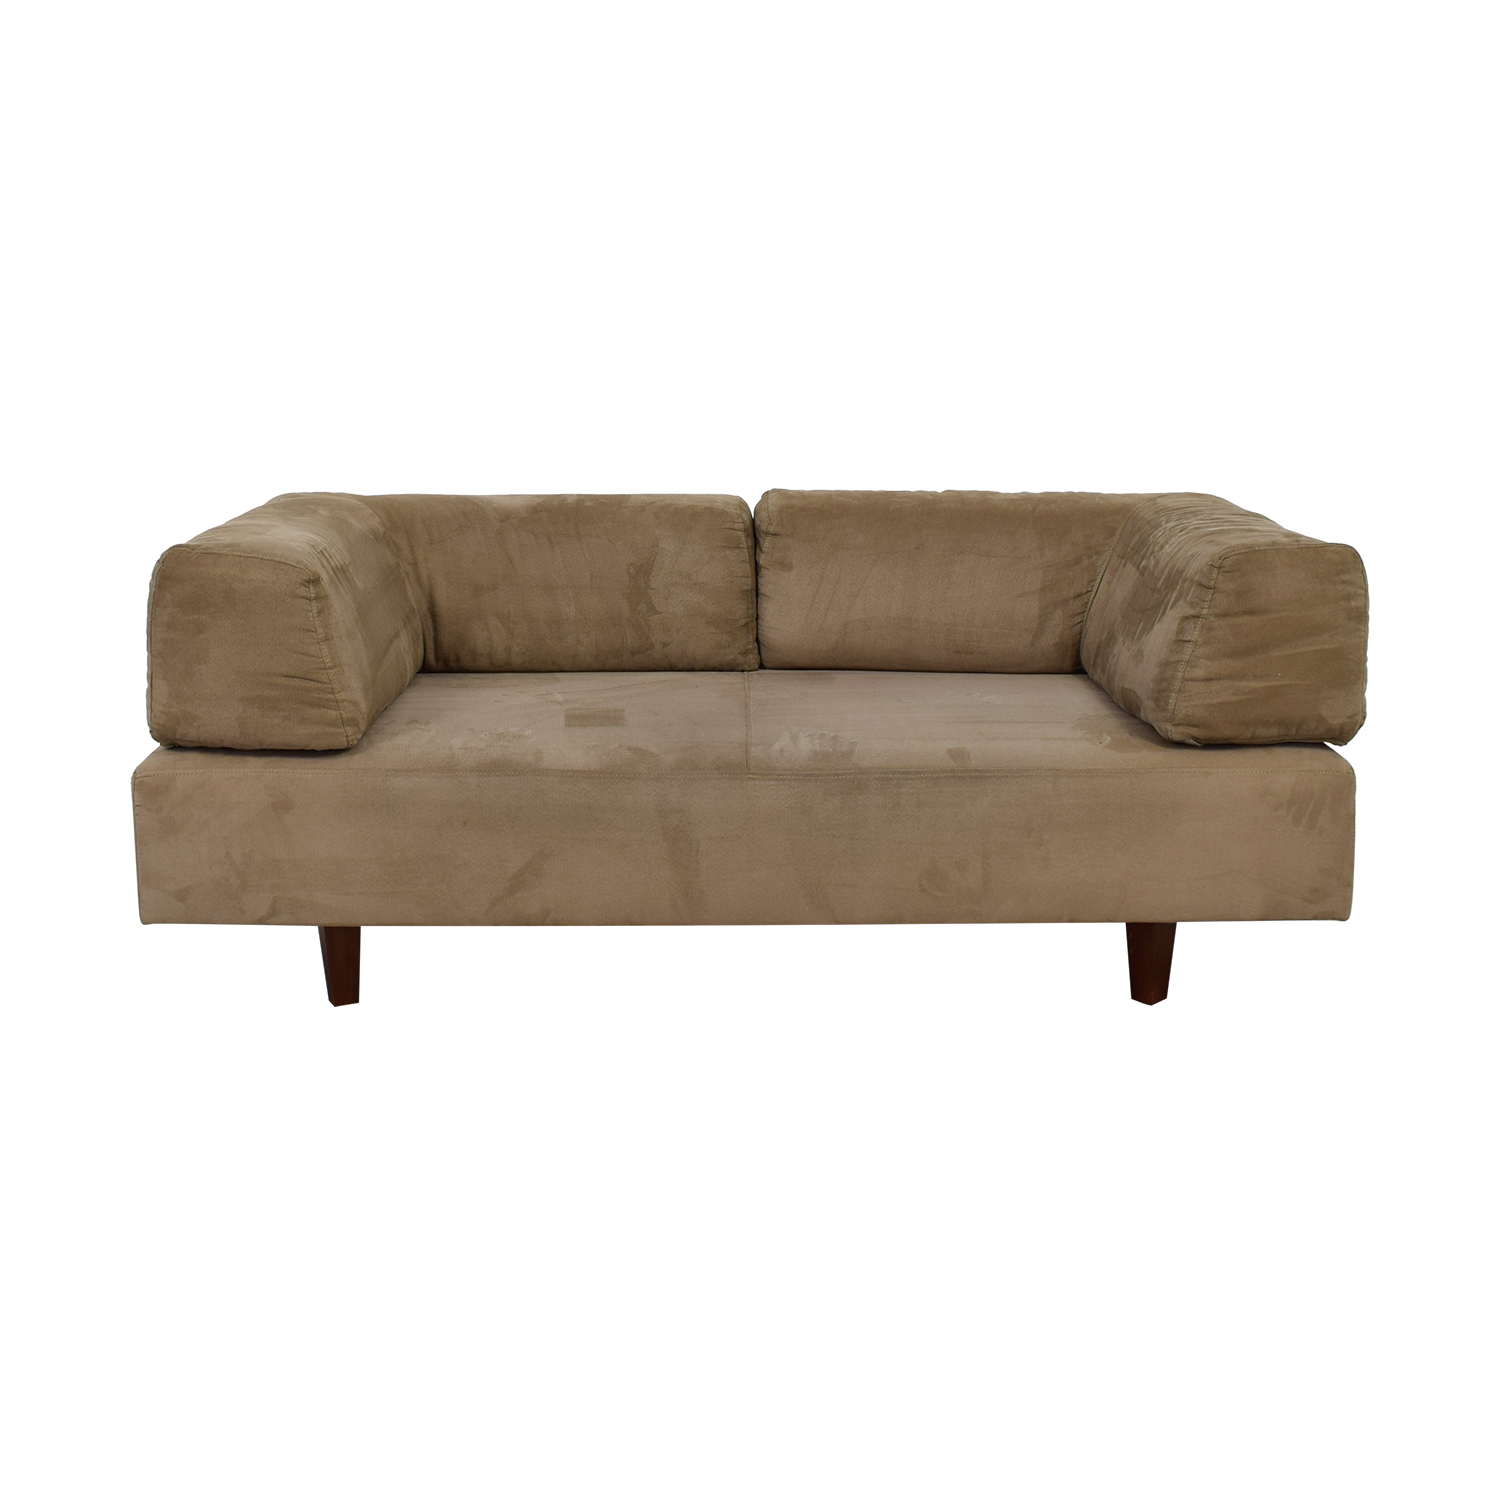 West Elm West Elm Beige Sofa with Removable Back Cushions second hand